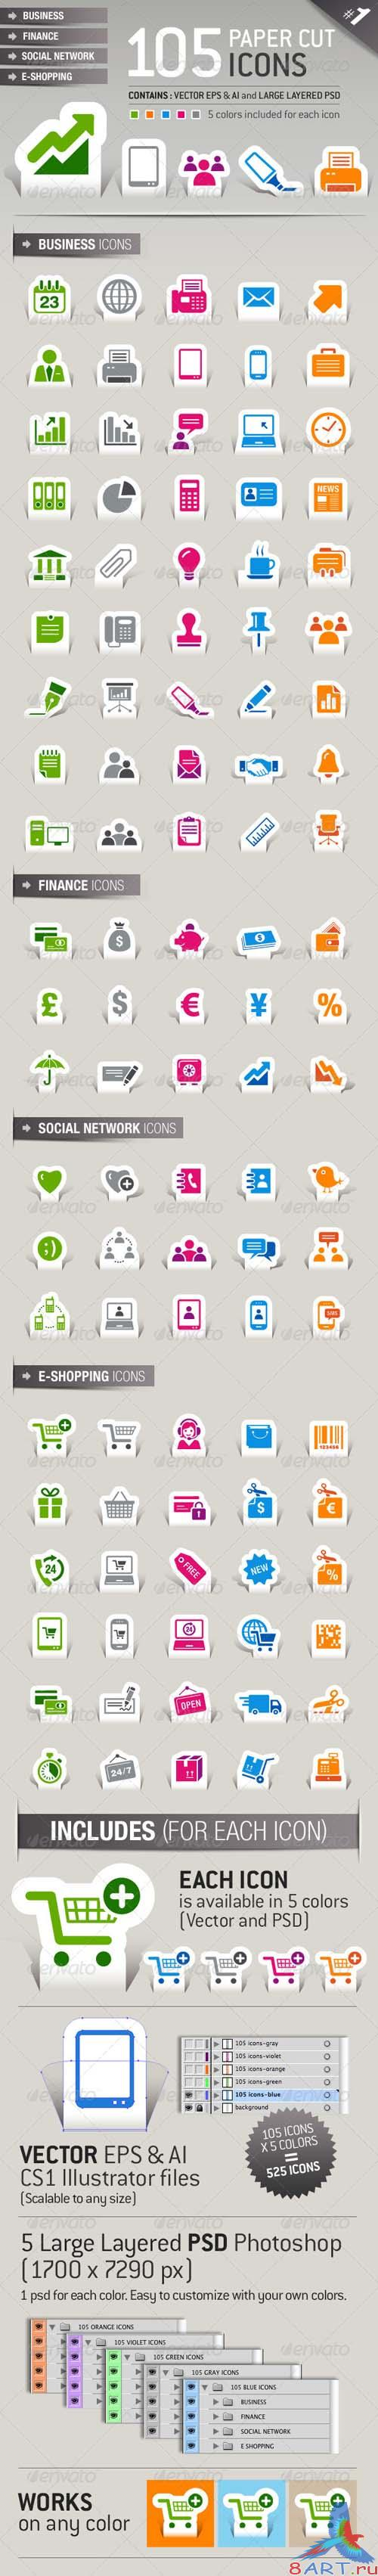 GraphicRiver 105 Papercut Icons - REUPLOAD